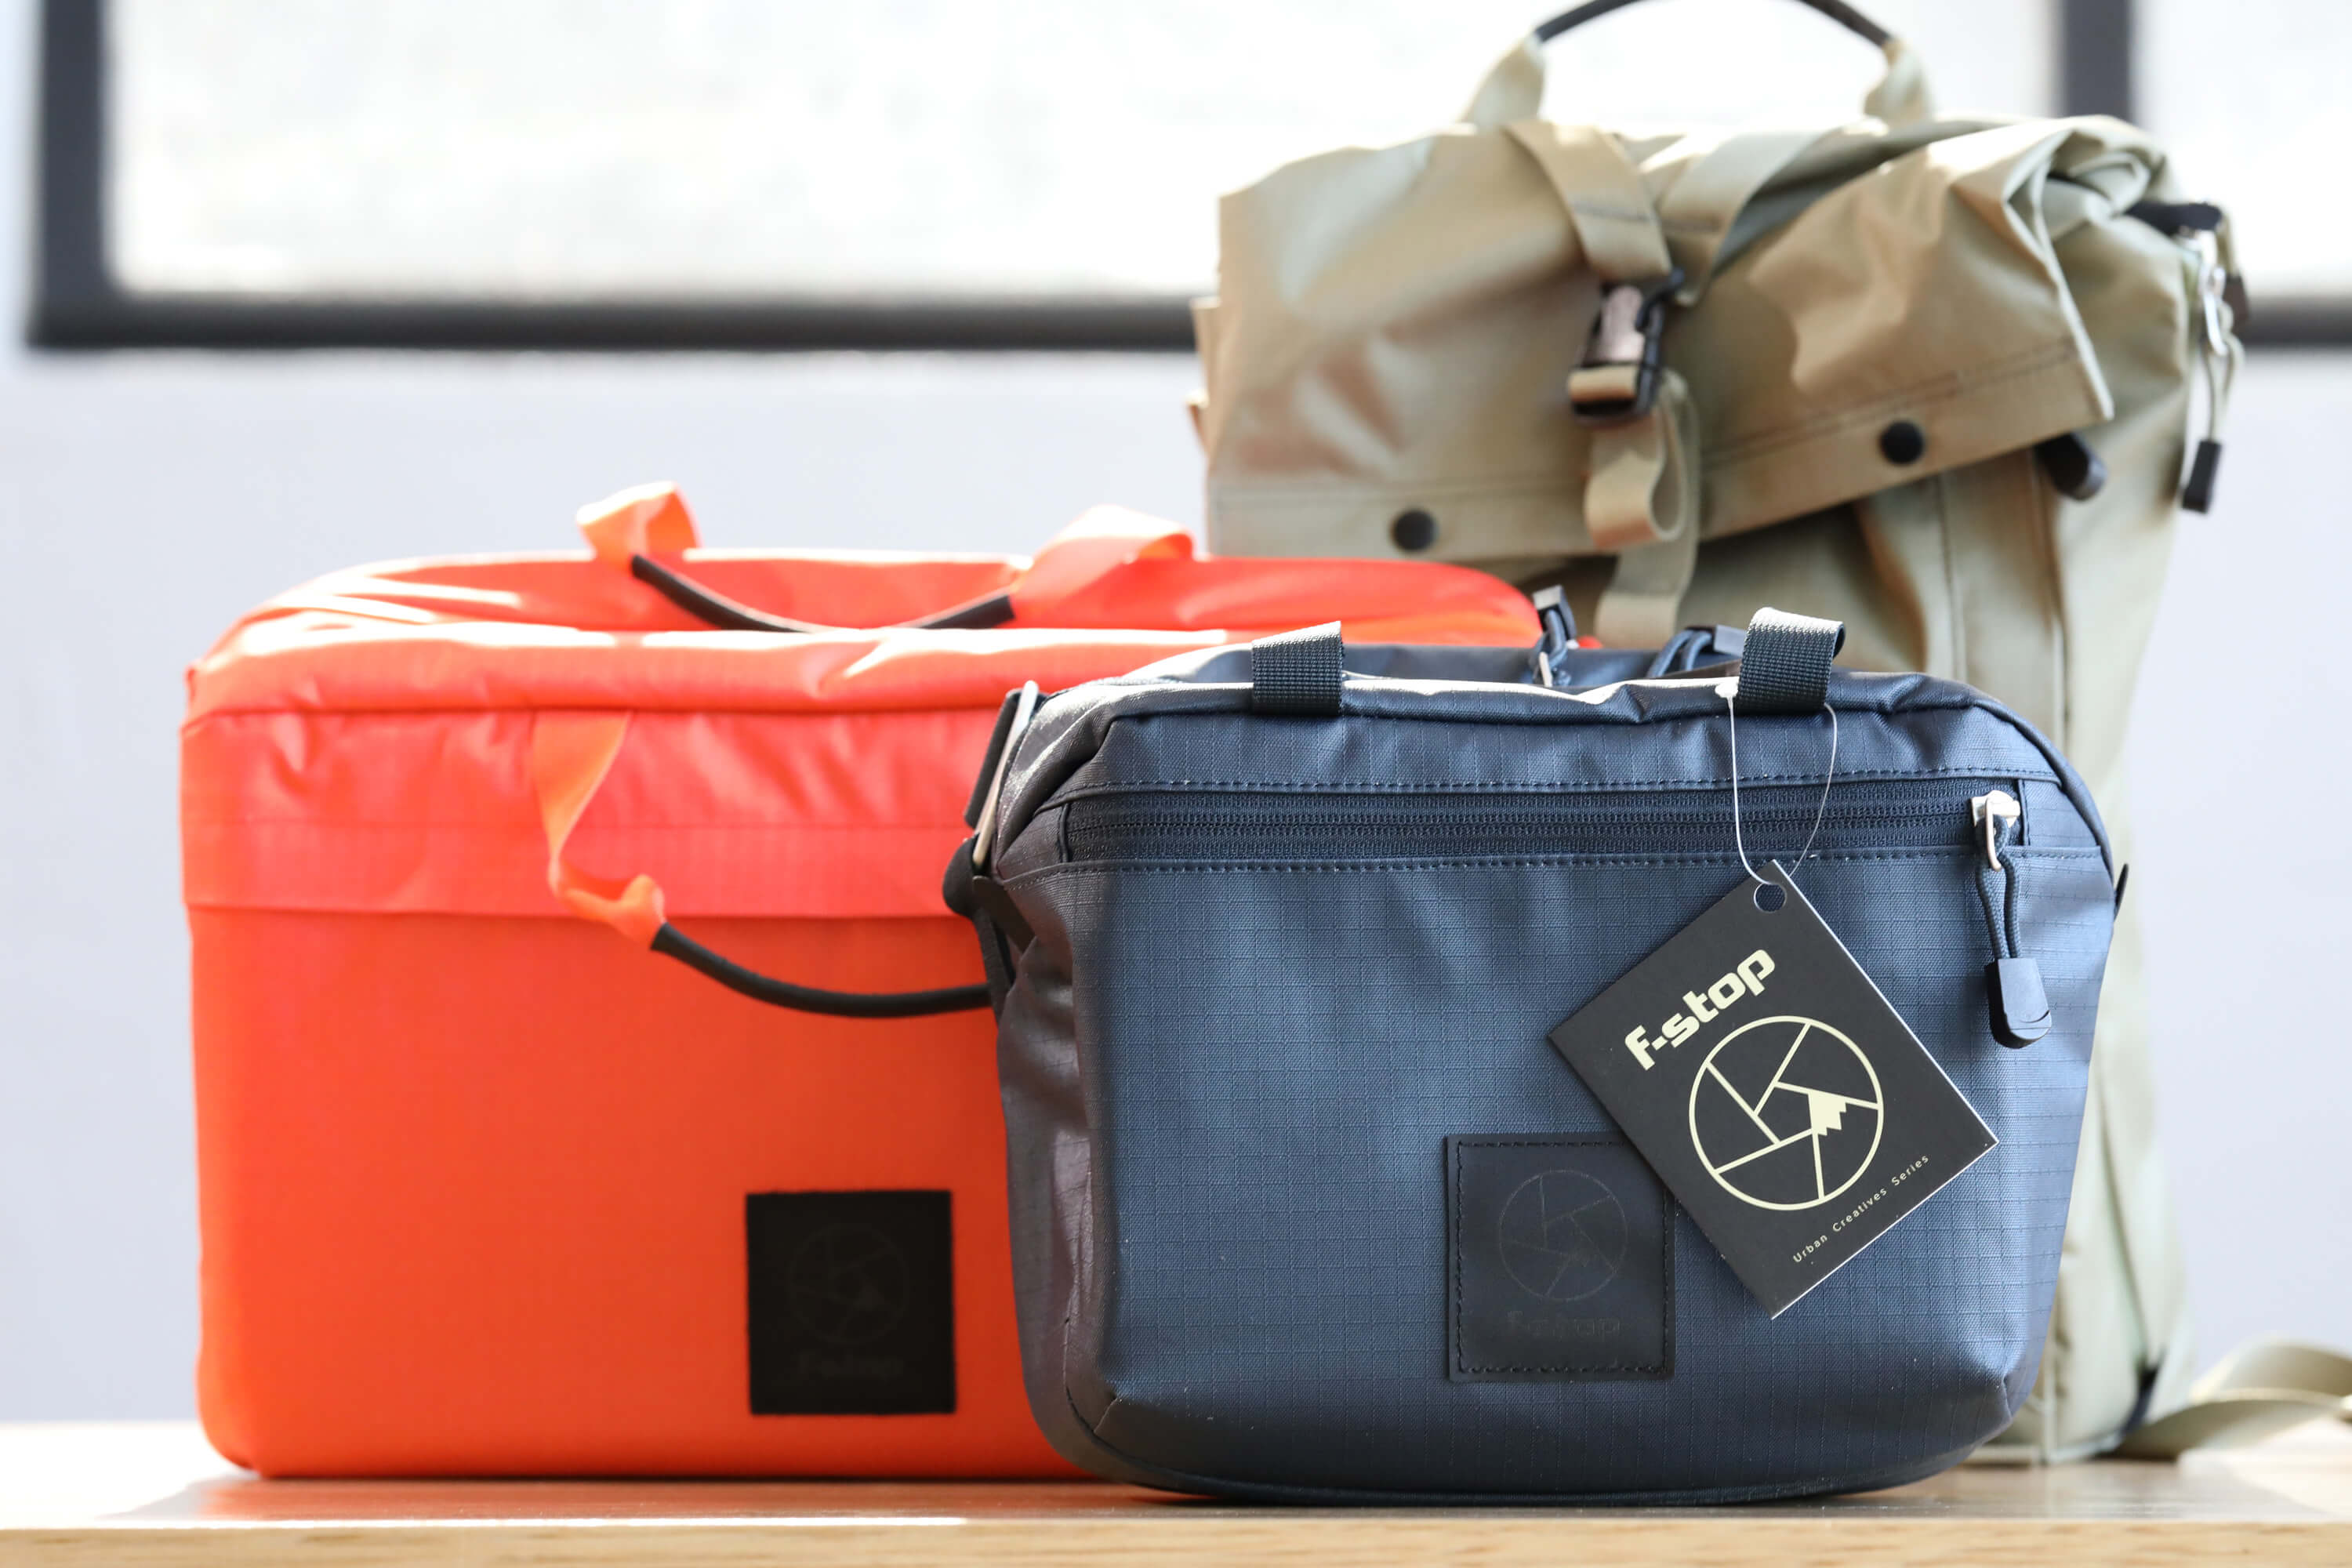 Fstop camera bag range